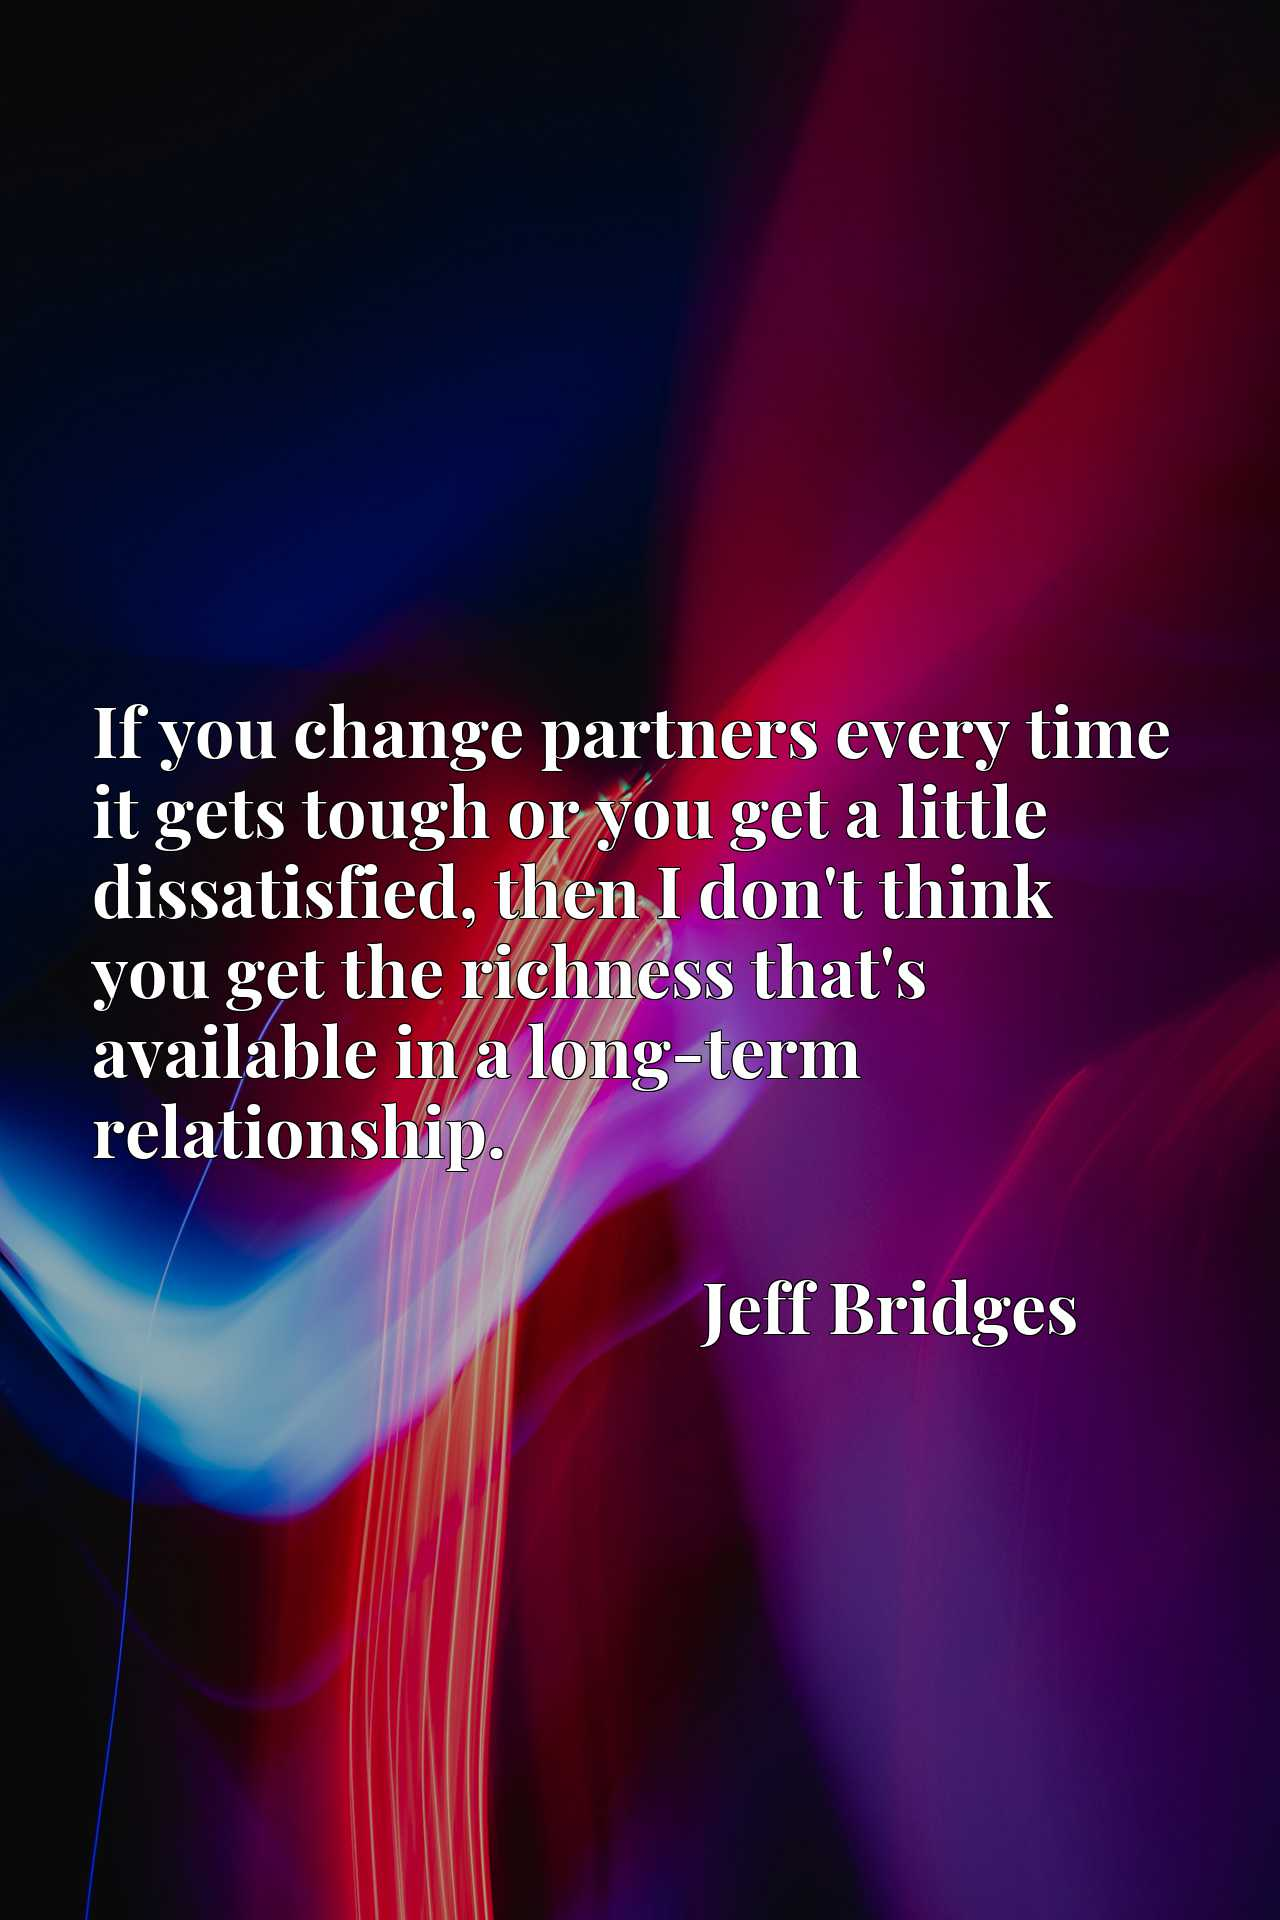 If you change partners every time it gets tough or you get a little dissatisfied, then I don't think you get the richness that's available in a long-term relationship.